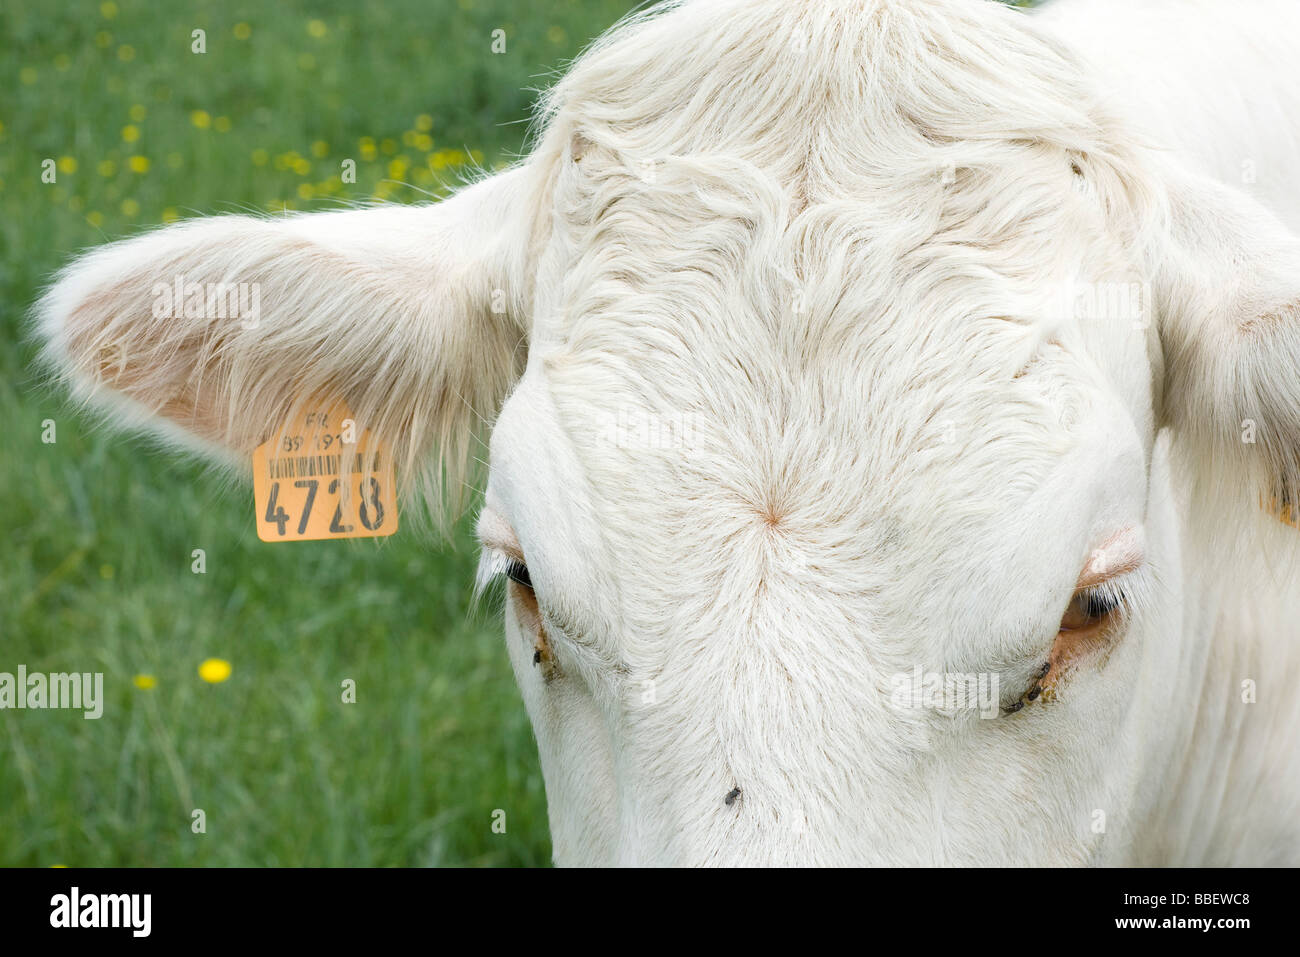 White cow with tagged ear, extreme close-up - Stock Image